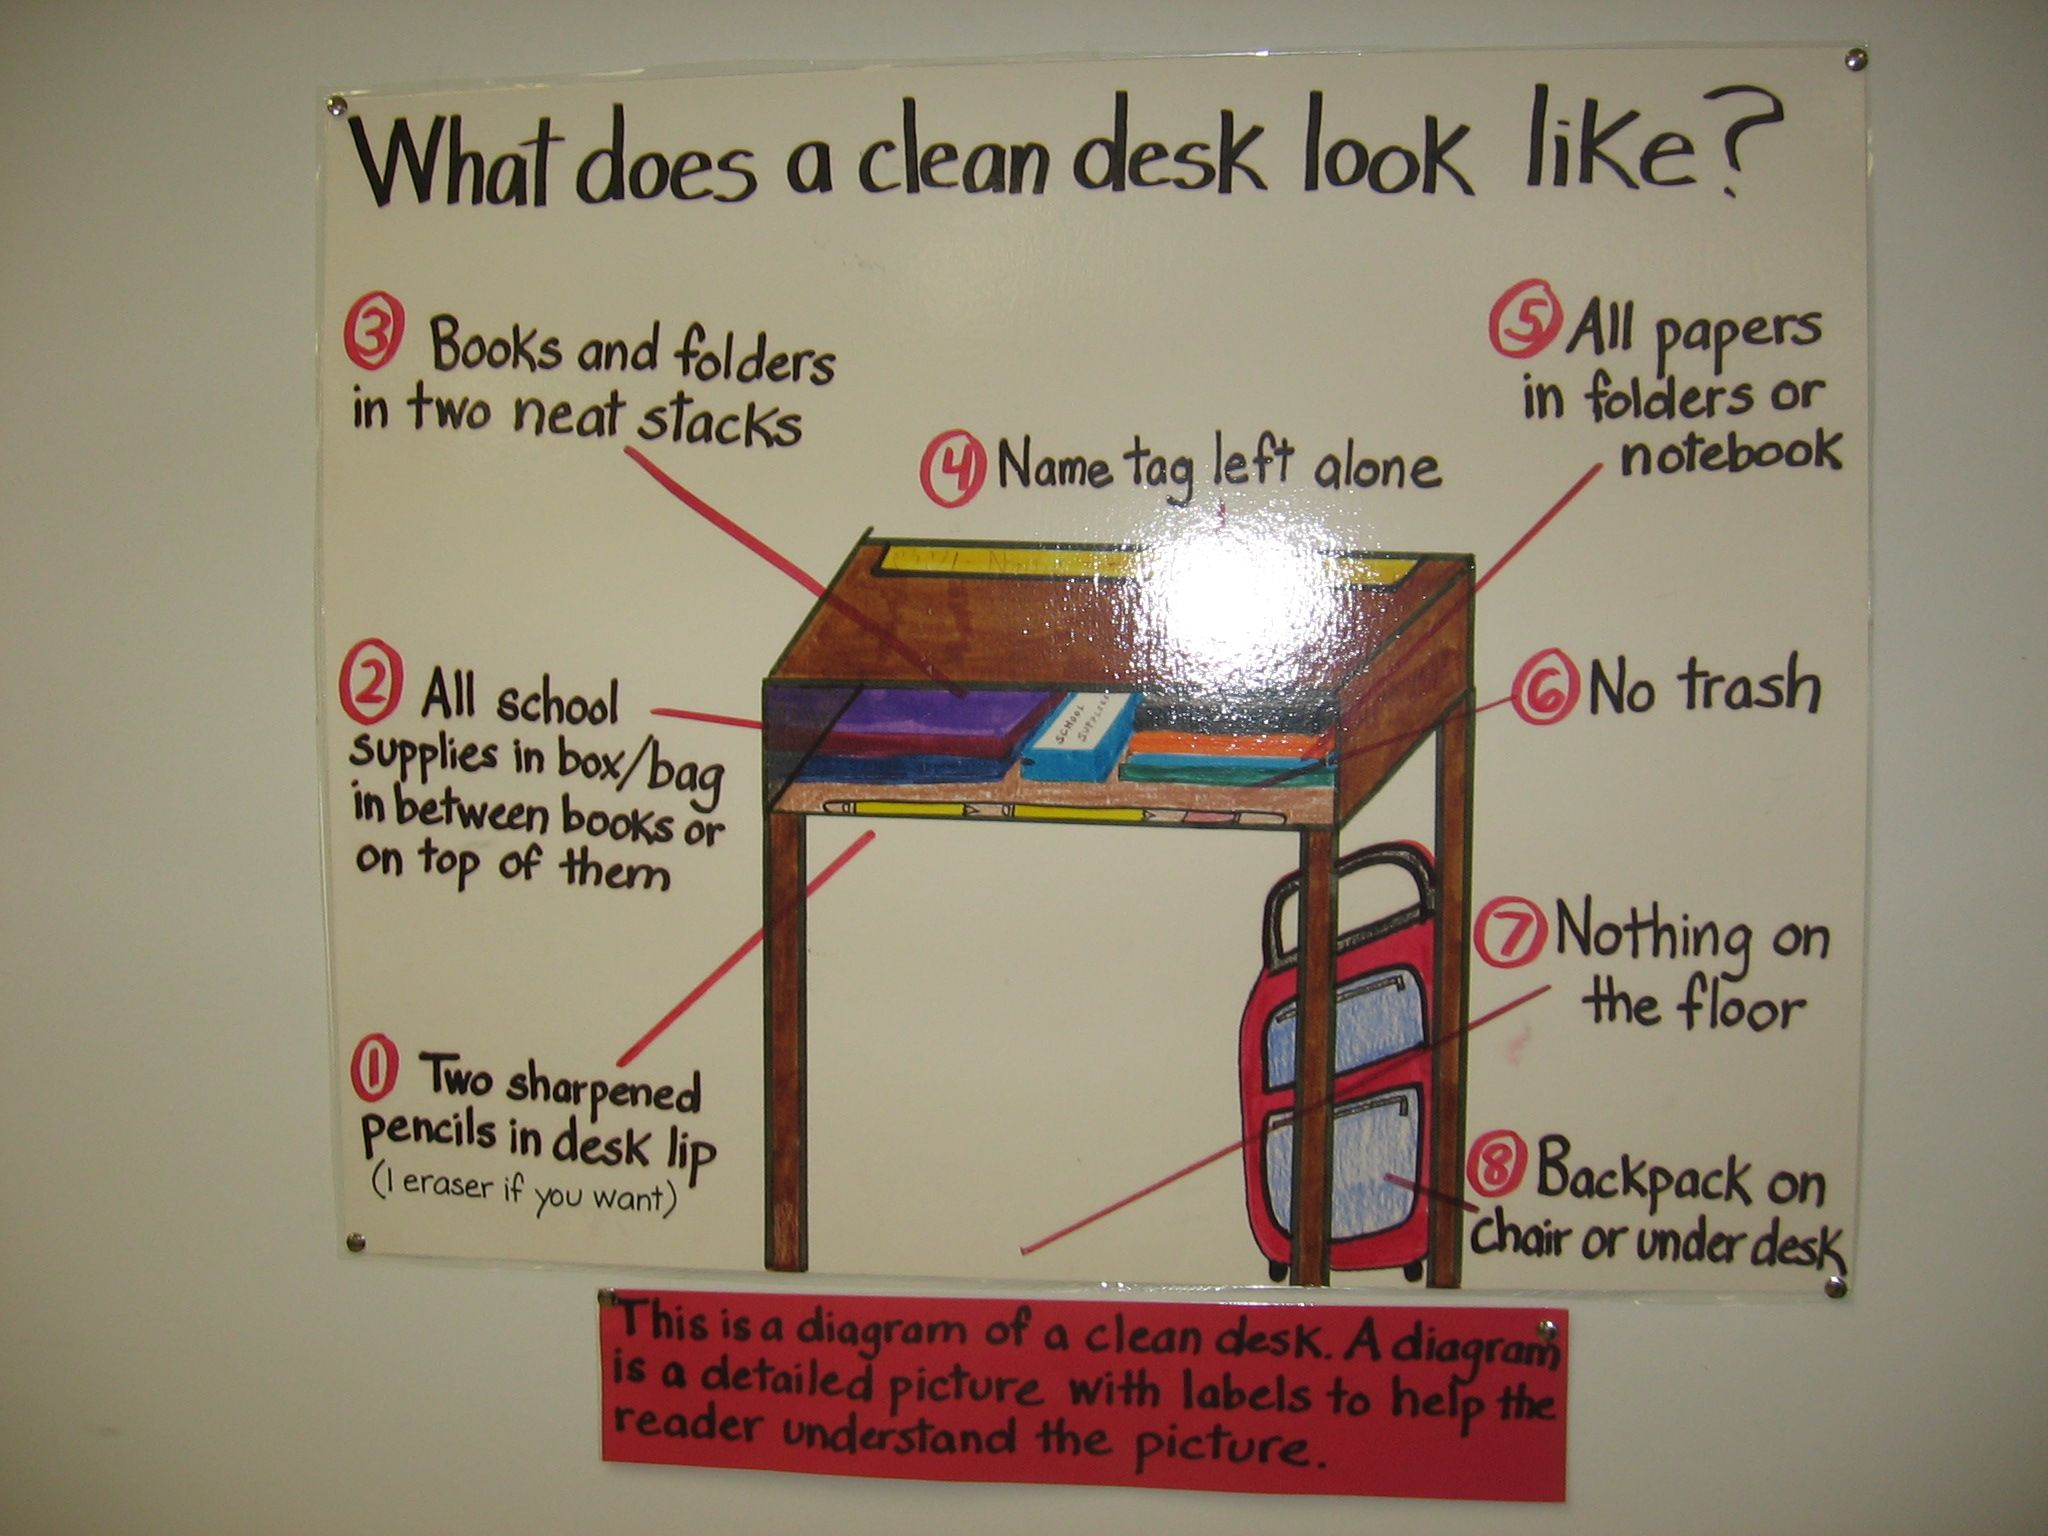 The Clean Desk Diagram